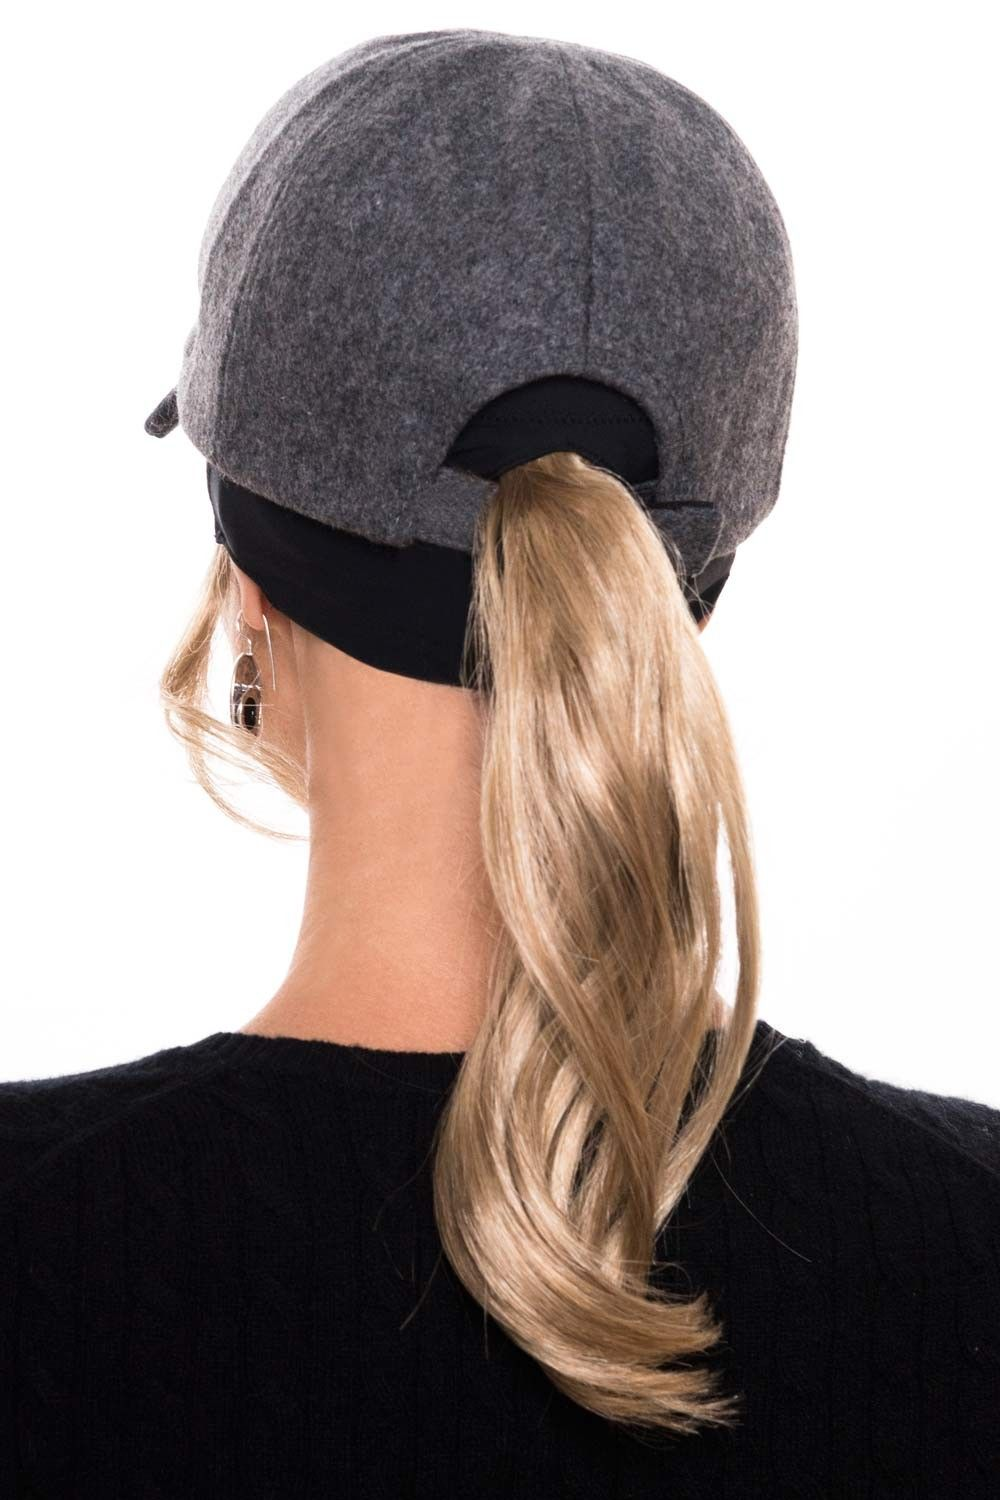 Ponytail Headband For Hats Baseball Cap With Hair By Cardani Hair Pieces Hair Loss Medicine Hair Loss Remedies Women